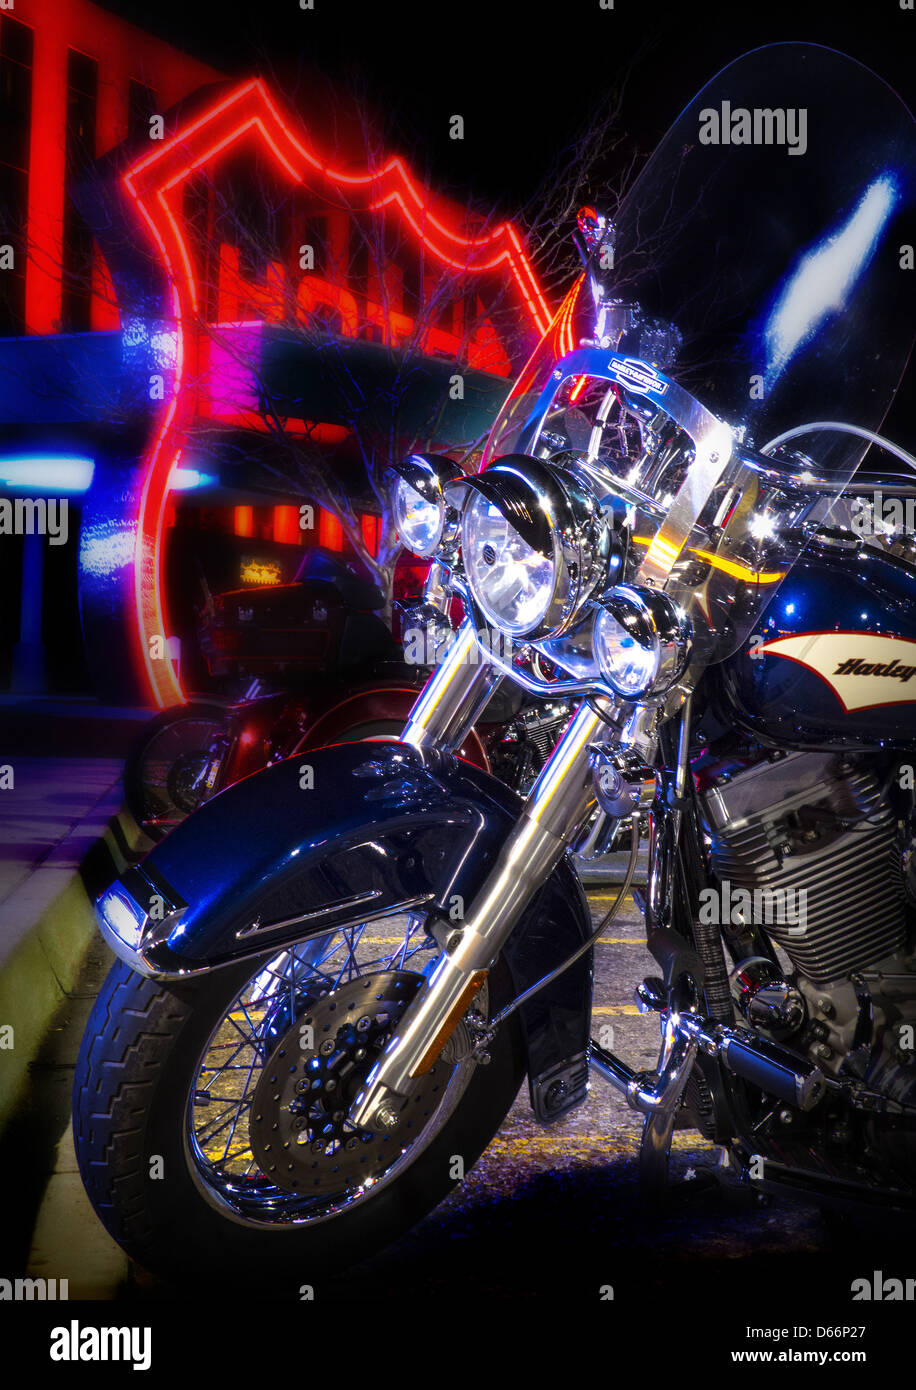 Motorcycle Parking at the Route 66 Casino Albuquerque New Mexico - Stock Image